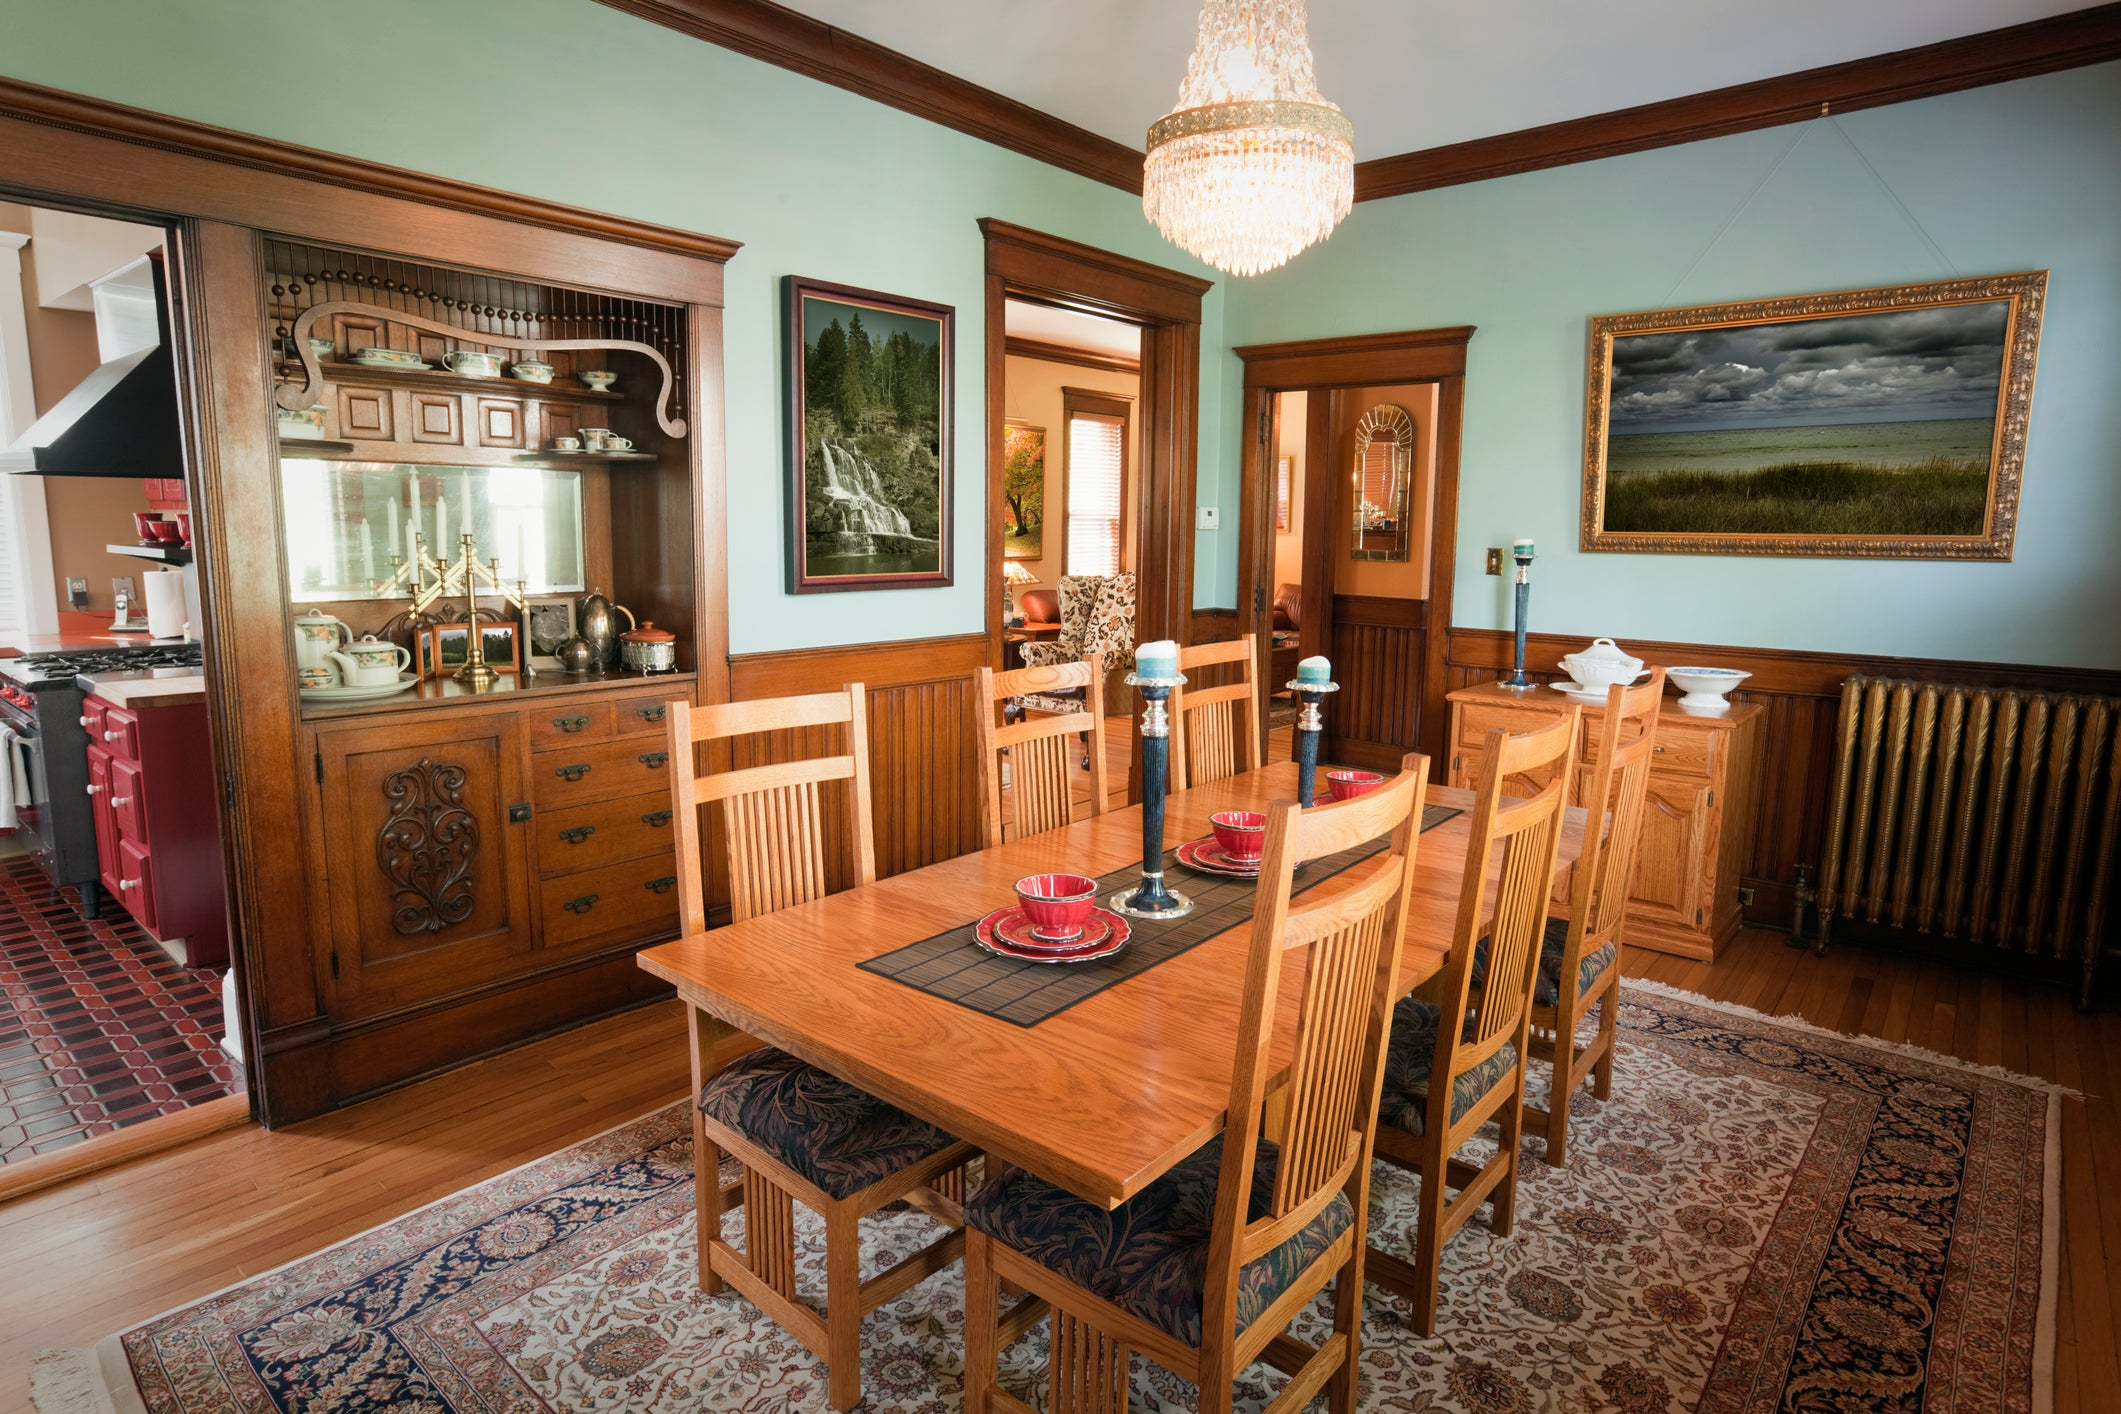 Traditional wooden table in a traditional dining room with matching decor